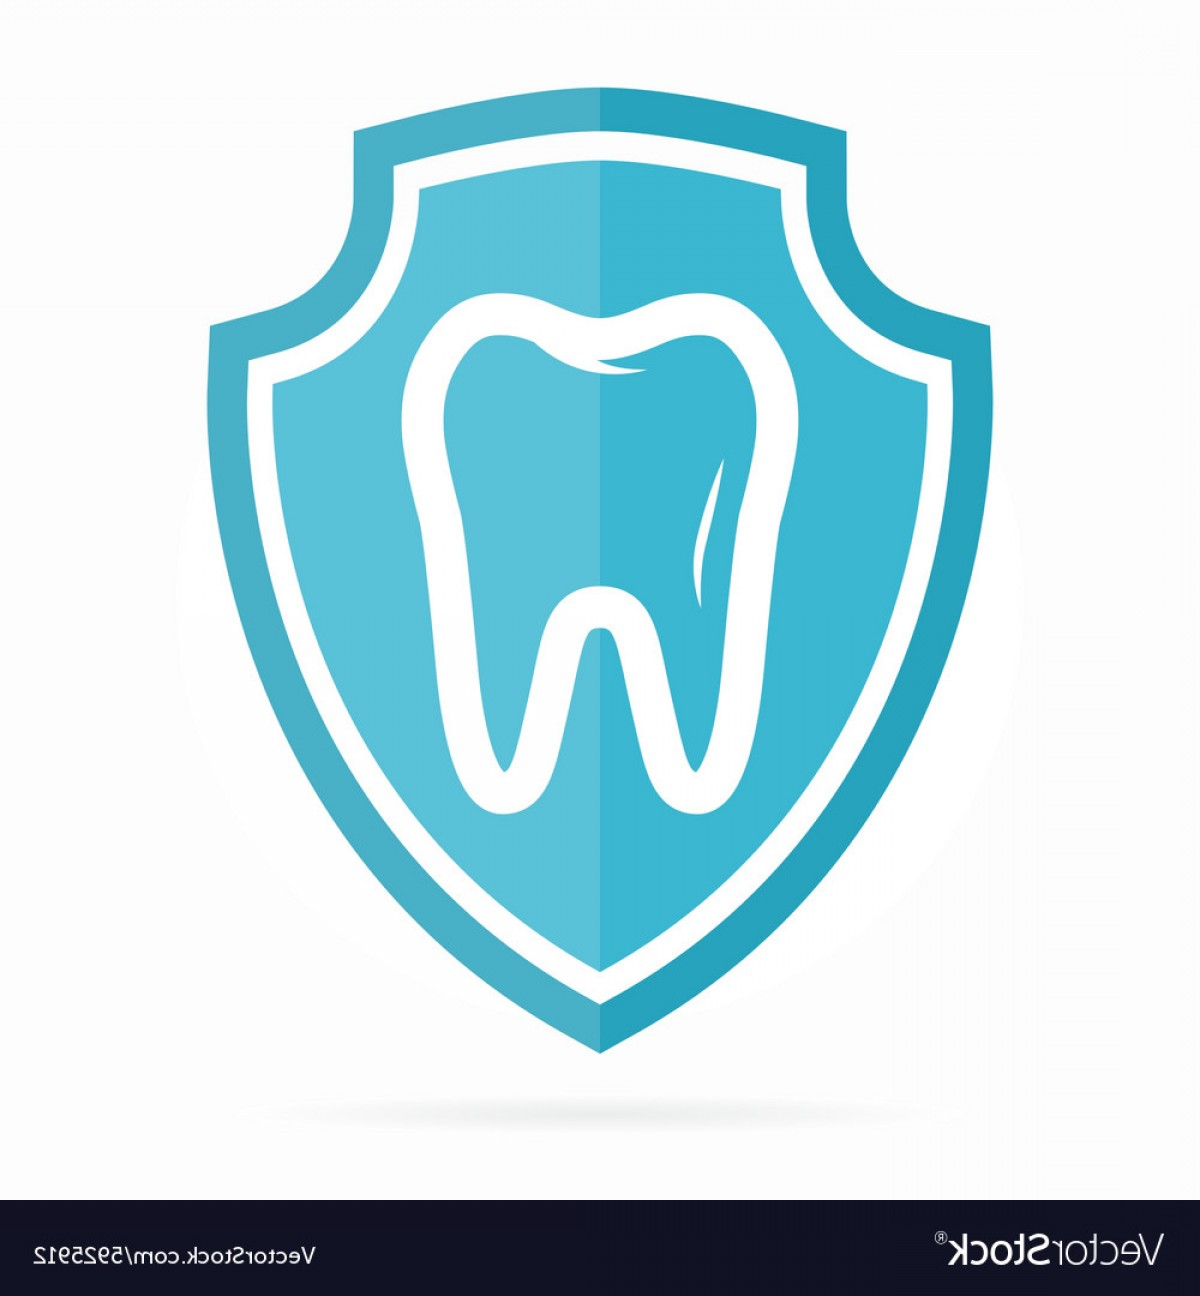 Tooth Vector Logo: Logo Combination Of Shield And Tooth Vector